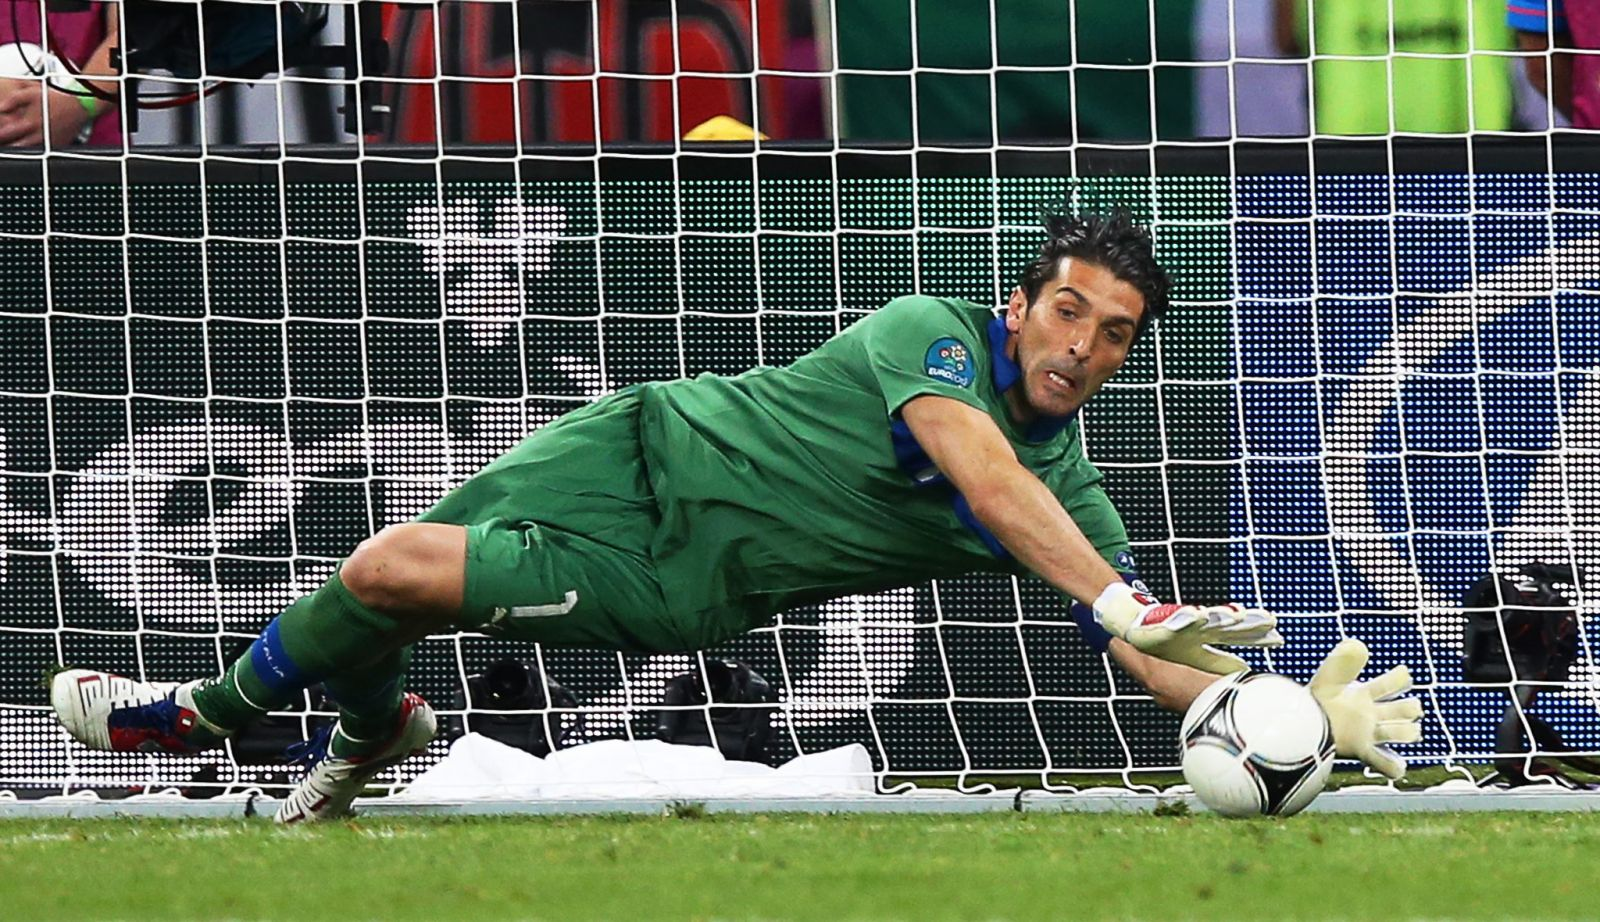 Italy s Gianluigi Buffon out for the clash against England